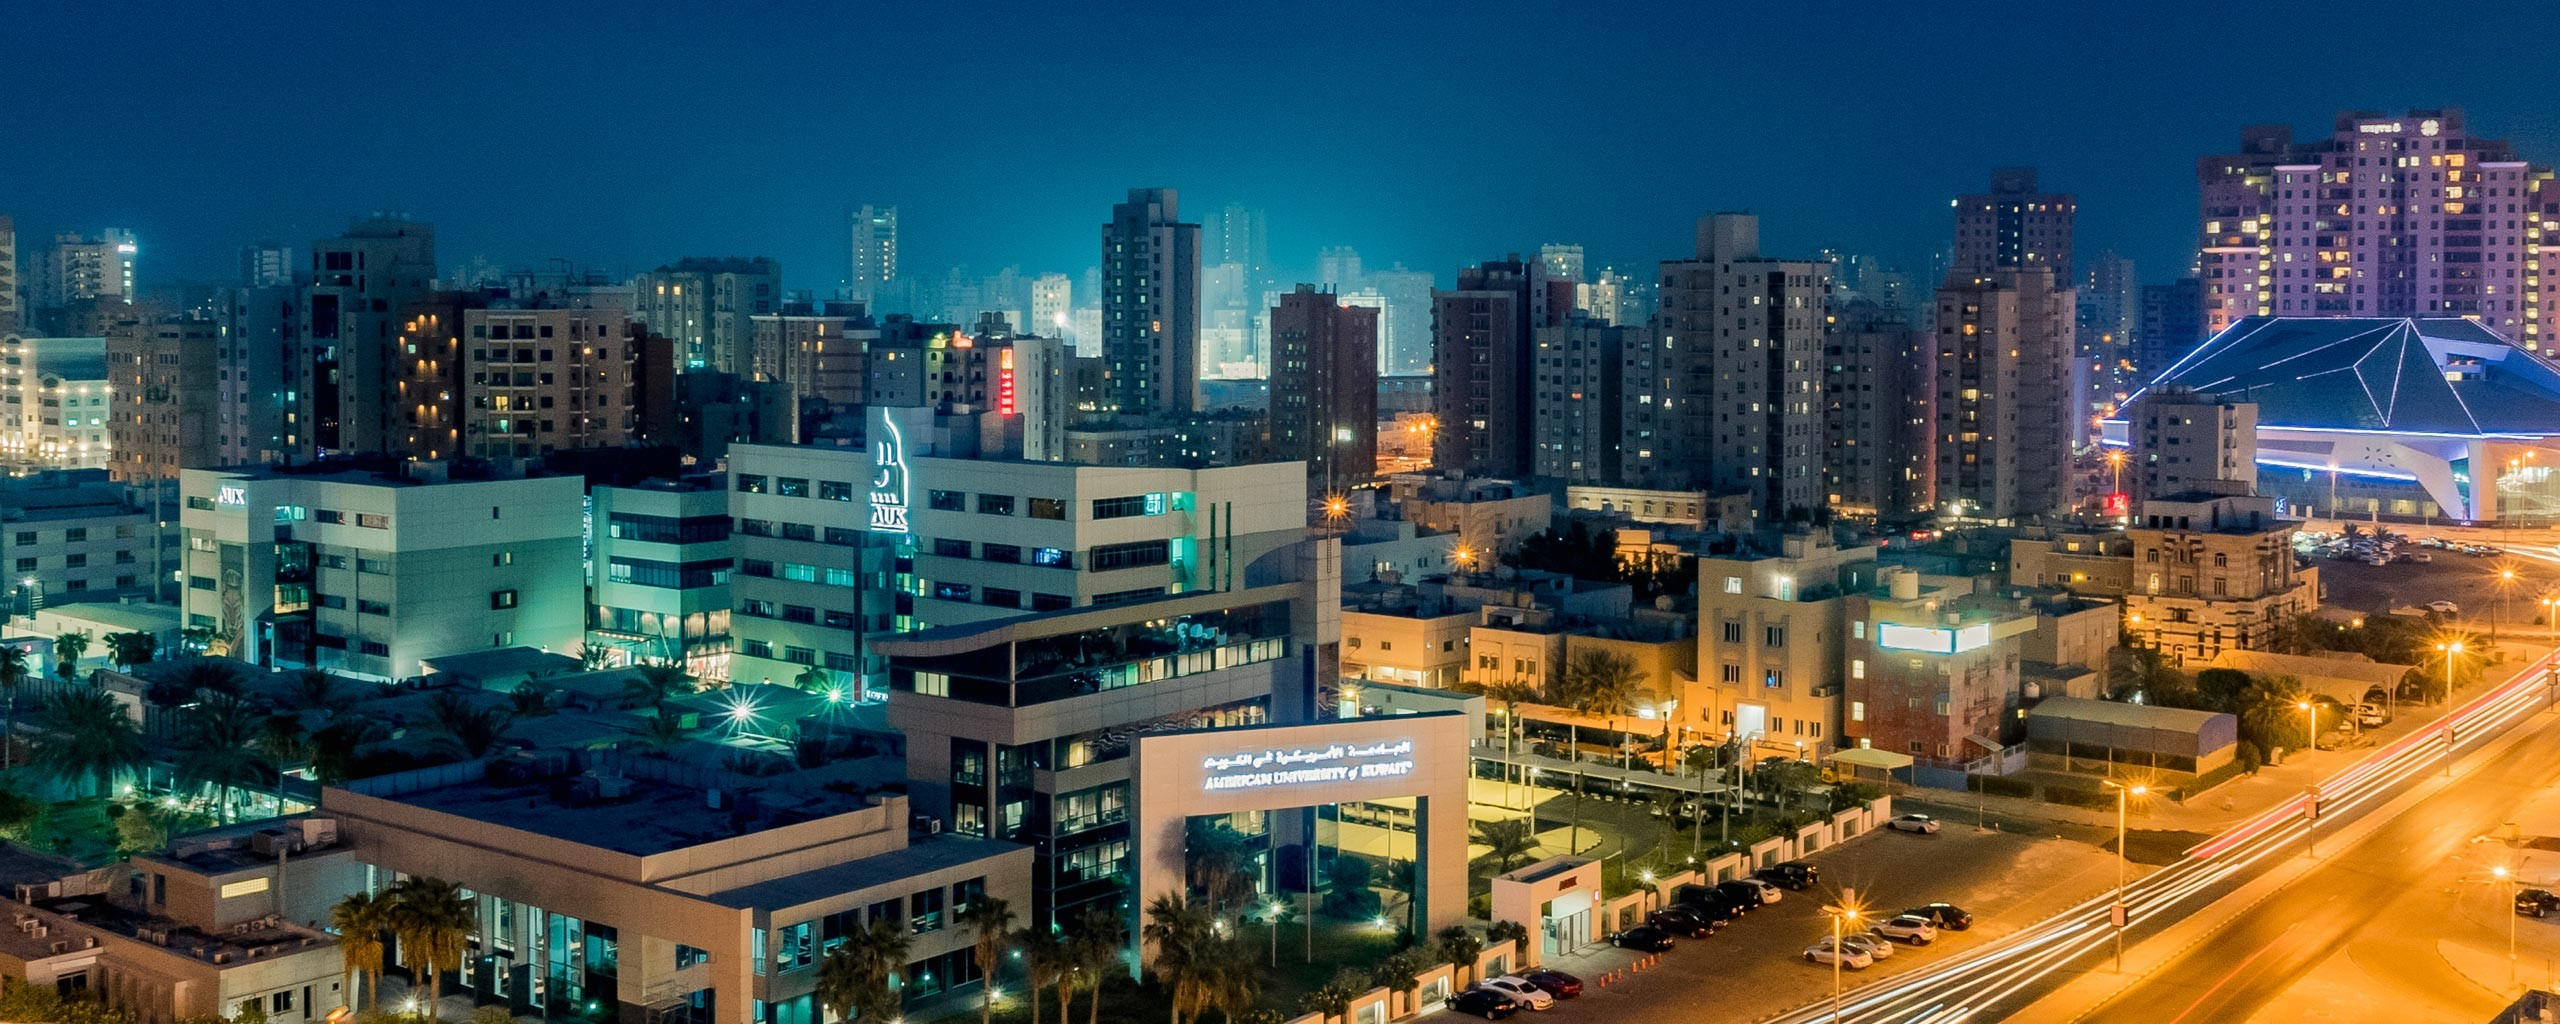 A night view of the American University of Kuwait and Kuwait City in the background.